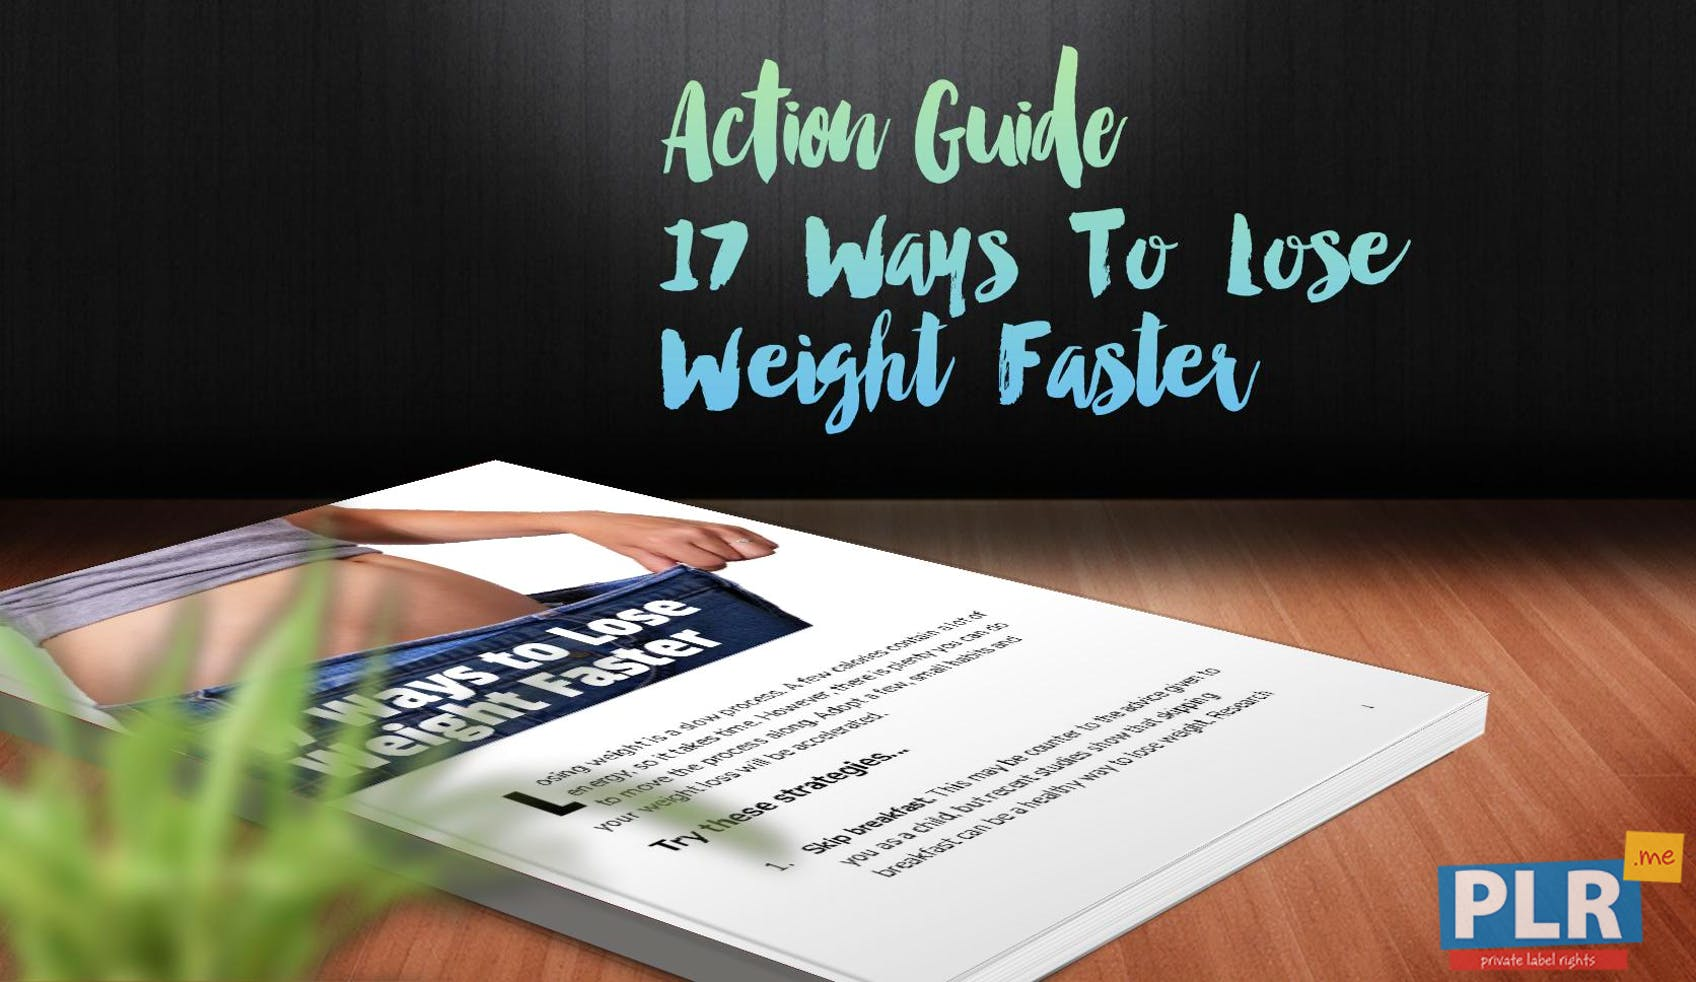 17 Ways To Lose Weight Faster